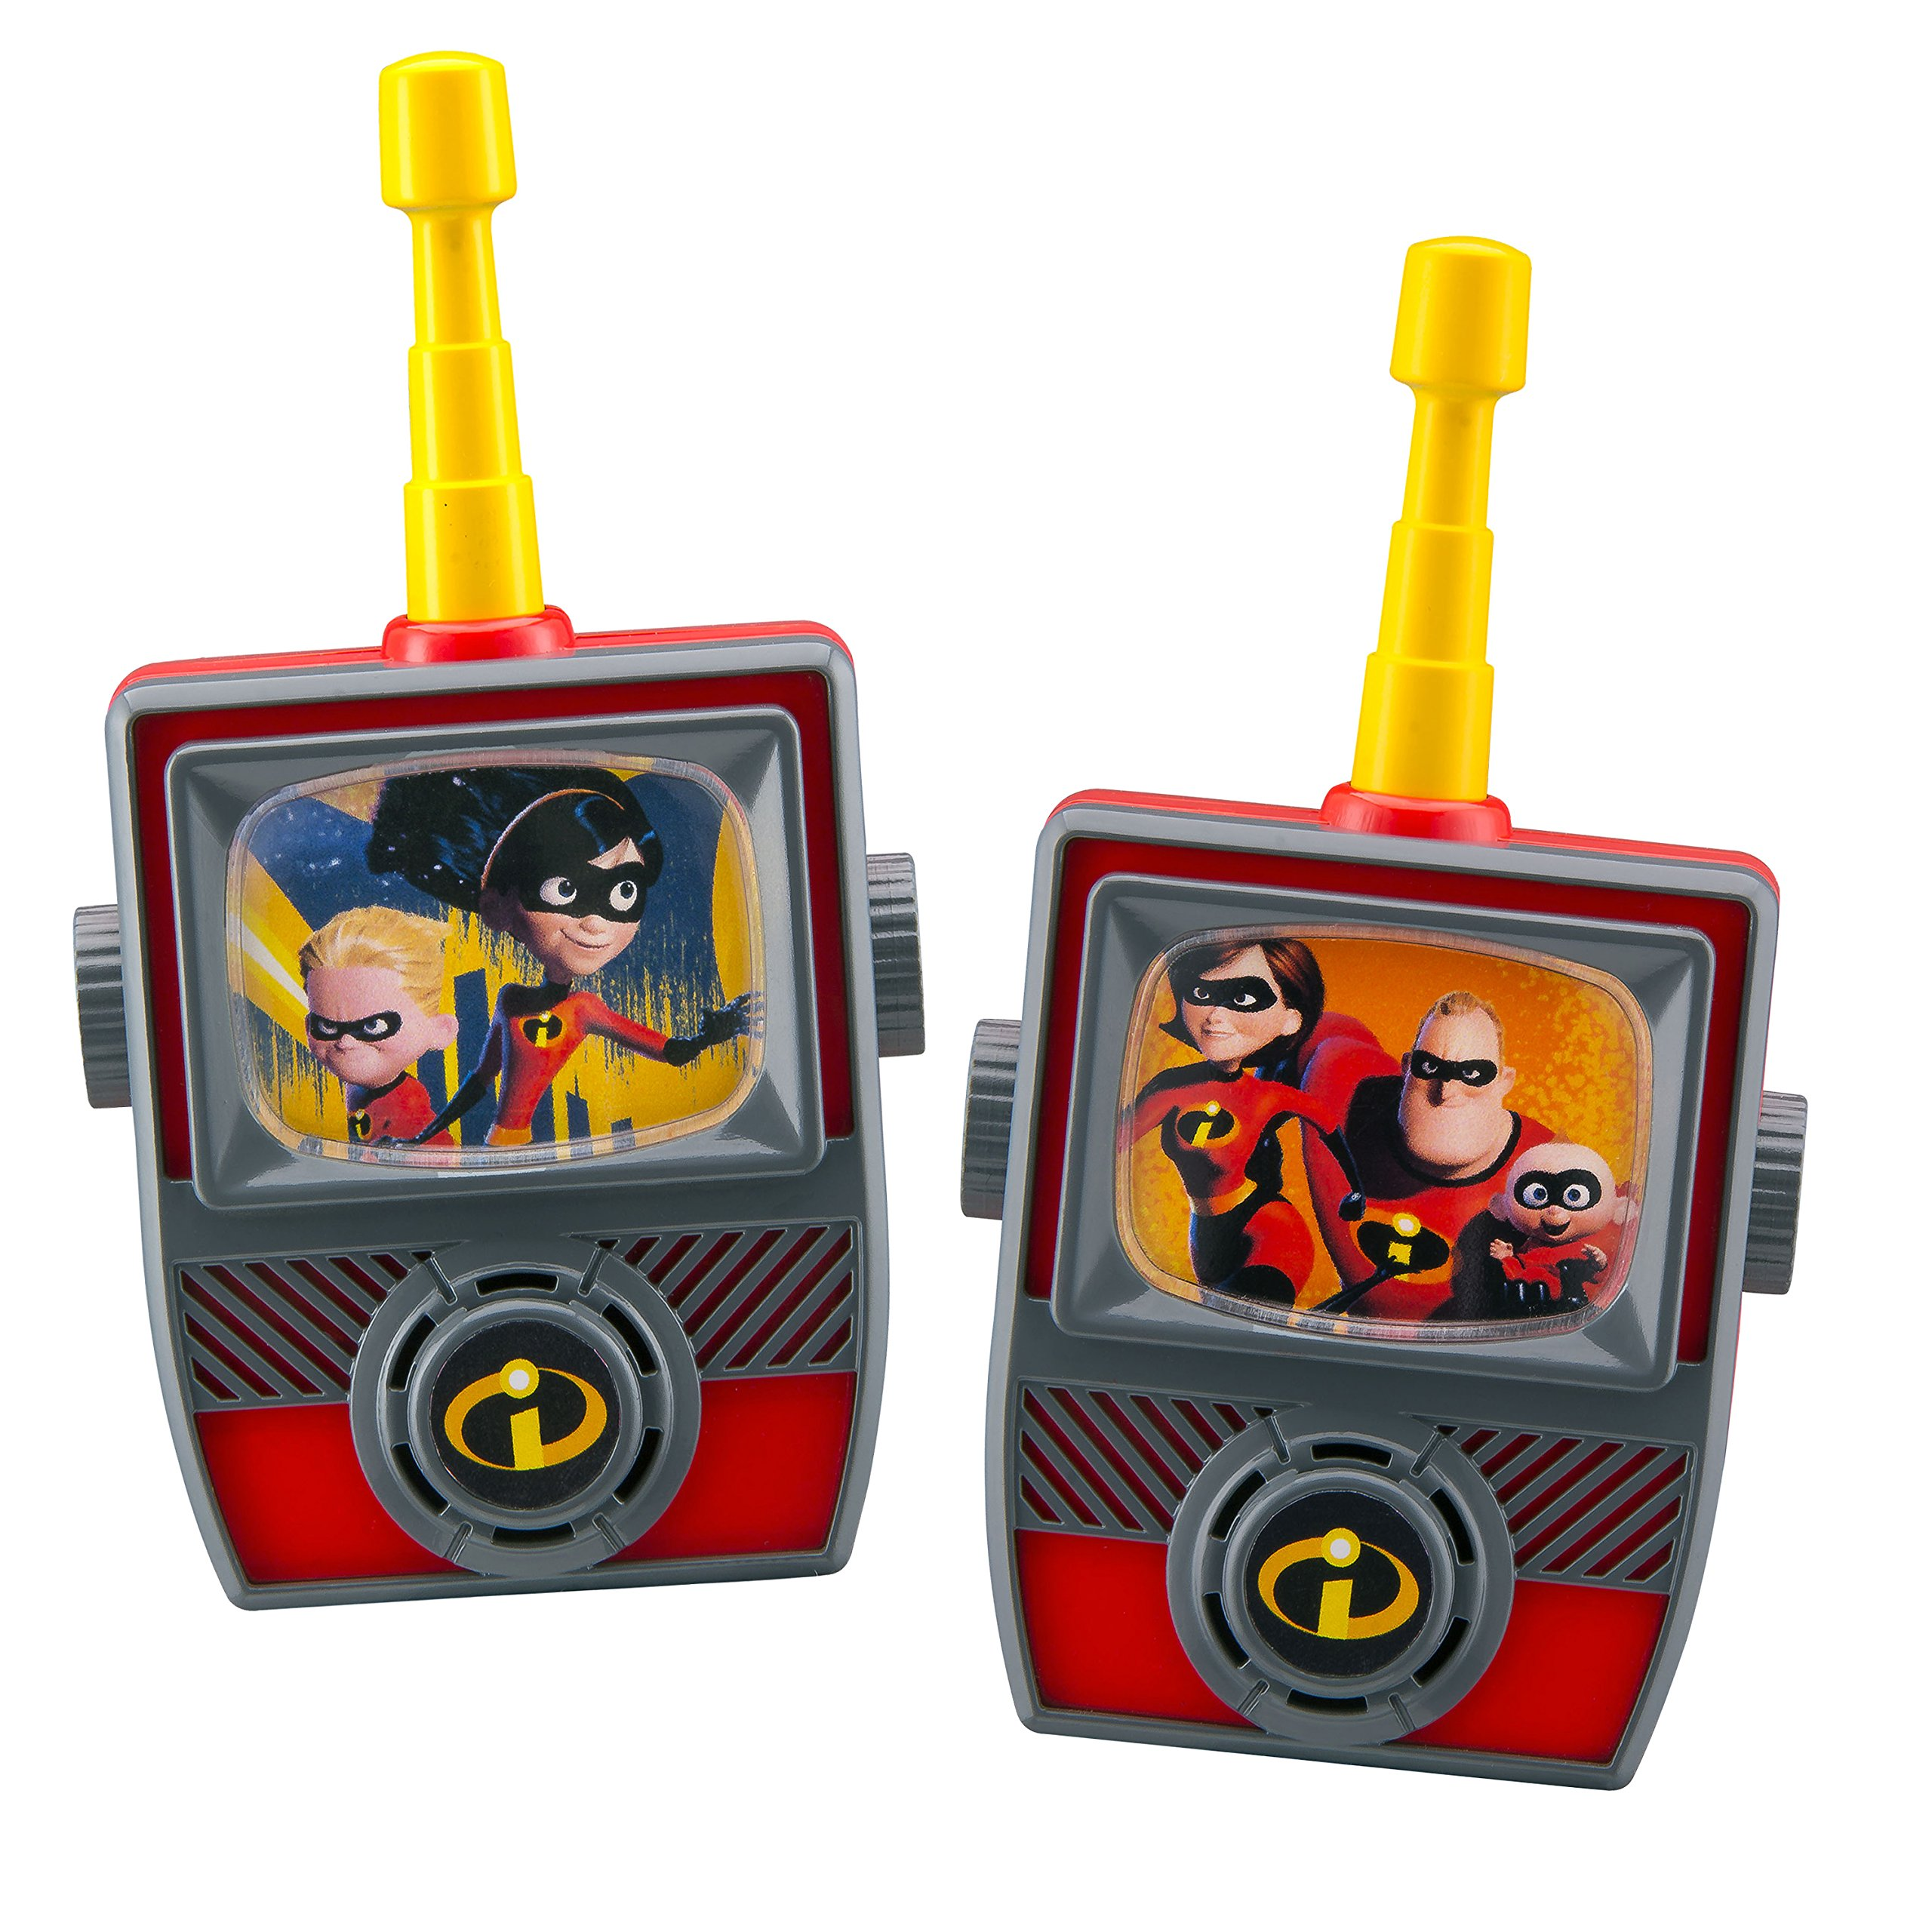 Incredibles 2 Walkie Talkies for Kids Static Free Extended Range Kid Friendly Easy to Use 2 Way Walkie Talkies